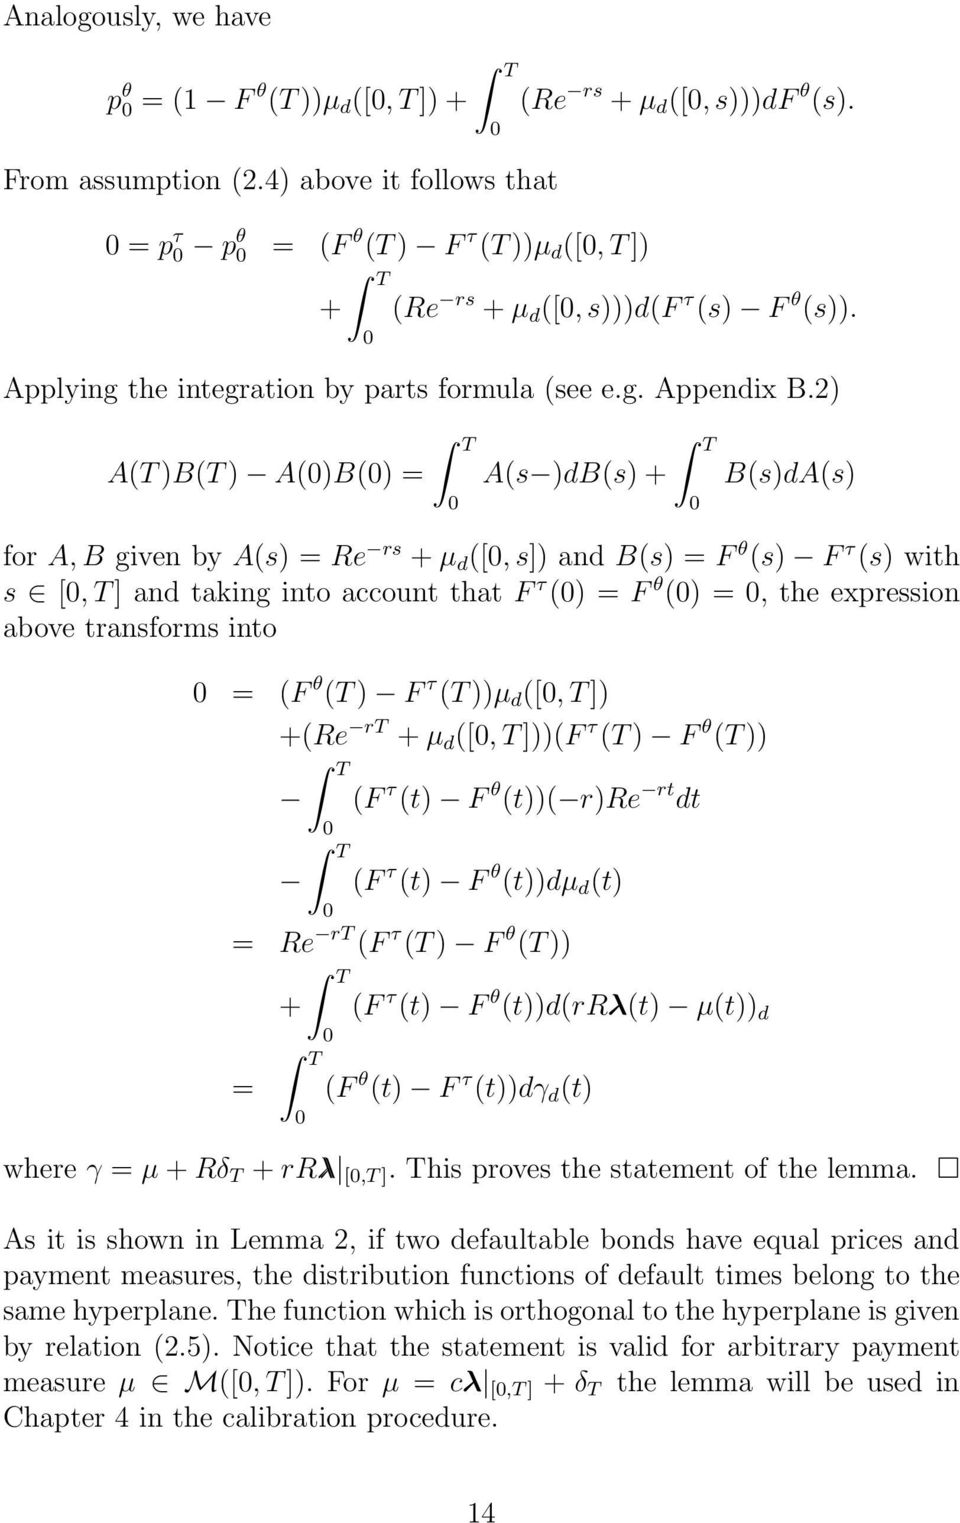 2 ATBT AB = T As dbs + T BsdAs for A,B given by As = Re rs + µ d [,s] and Bs = F θ s F τ s with s [,T] and taking into account that F τ = F θ =, the expression above transforms into = F θ T F τ Tµ d